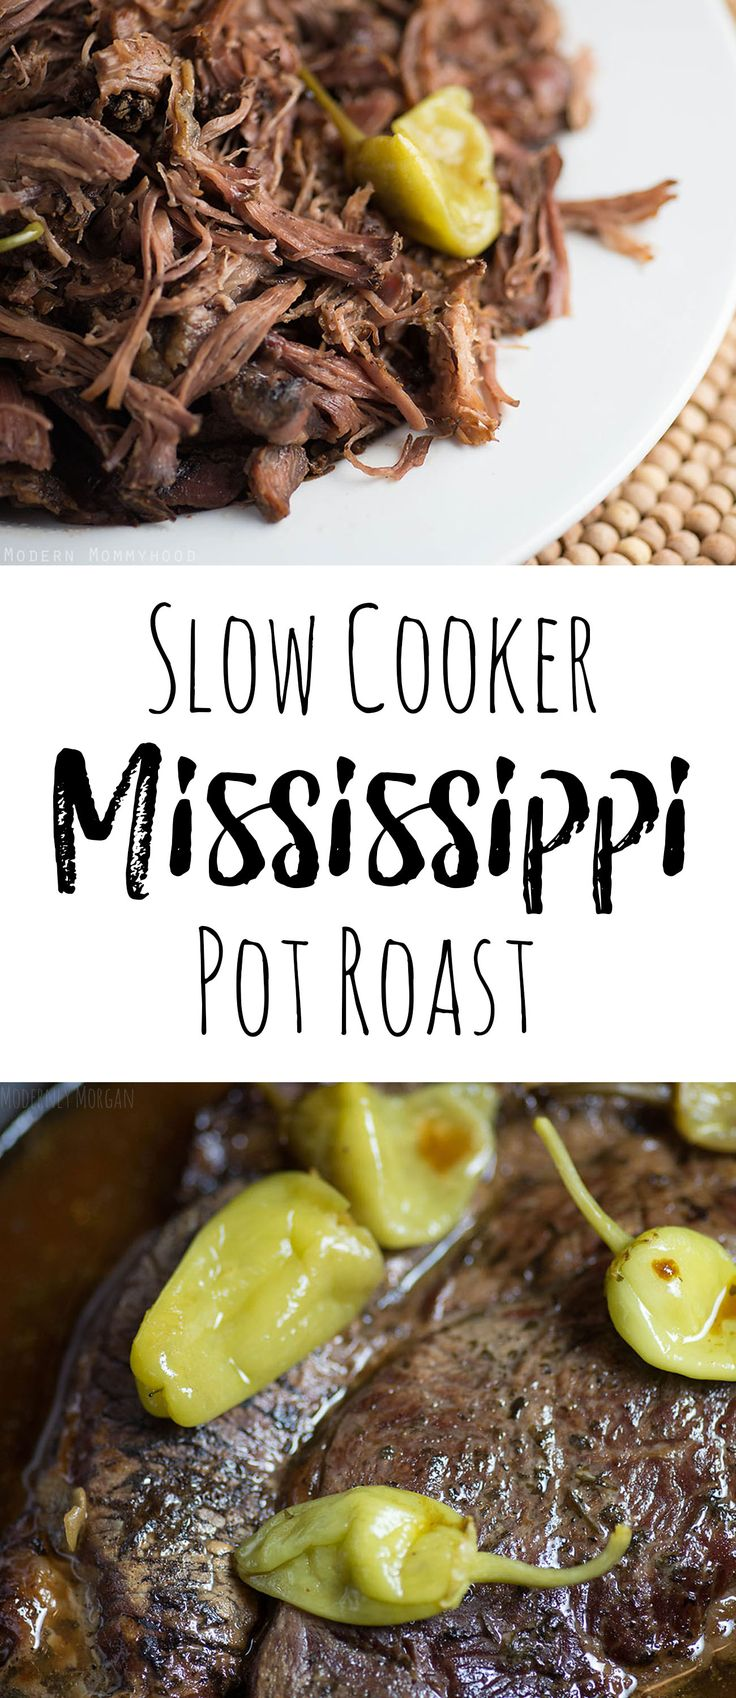 Slow Cooker Mississippi Pot Roast - The most juicy and flavorful roast recipe you'll ever make! Plus it's one of the easiest slow cooker meals to prepare!